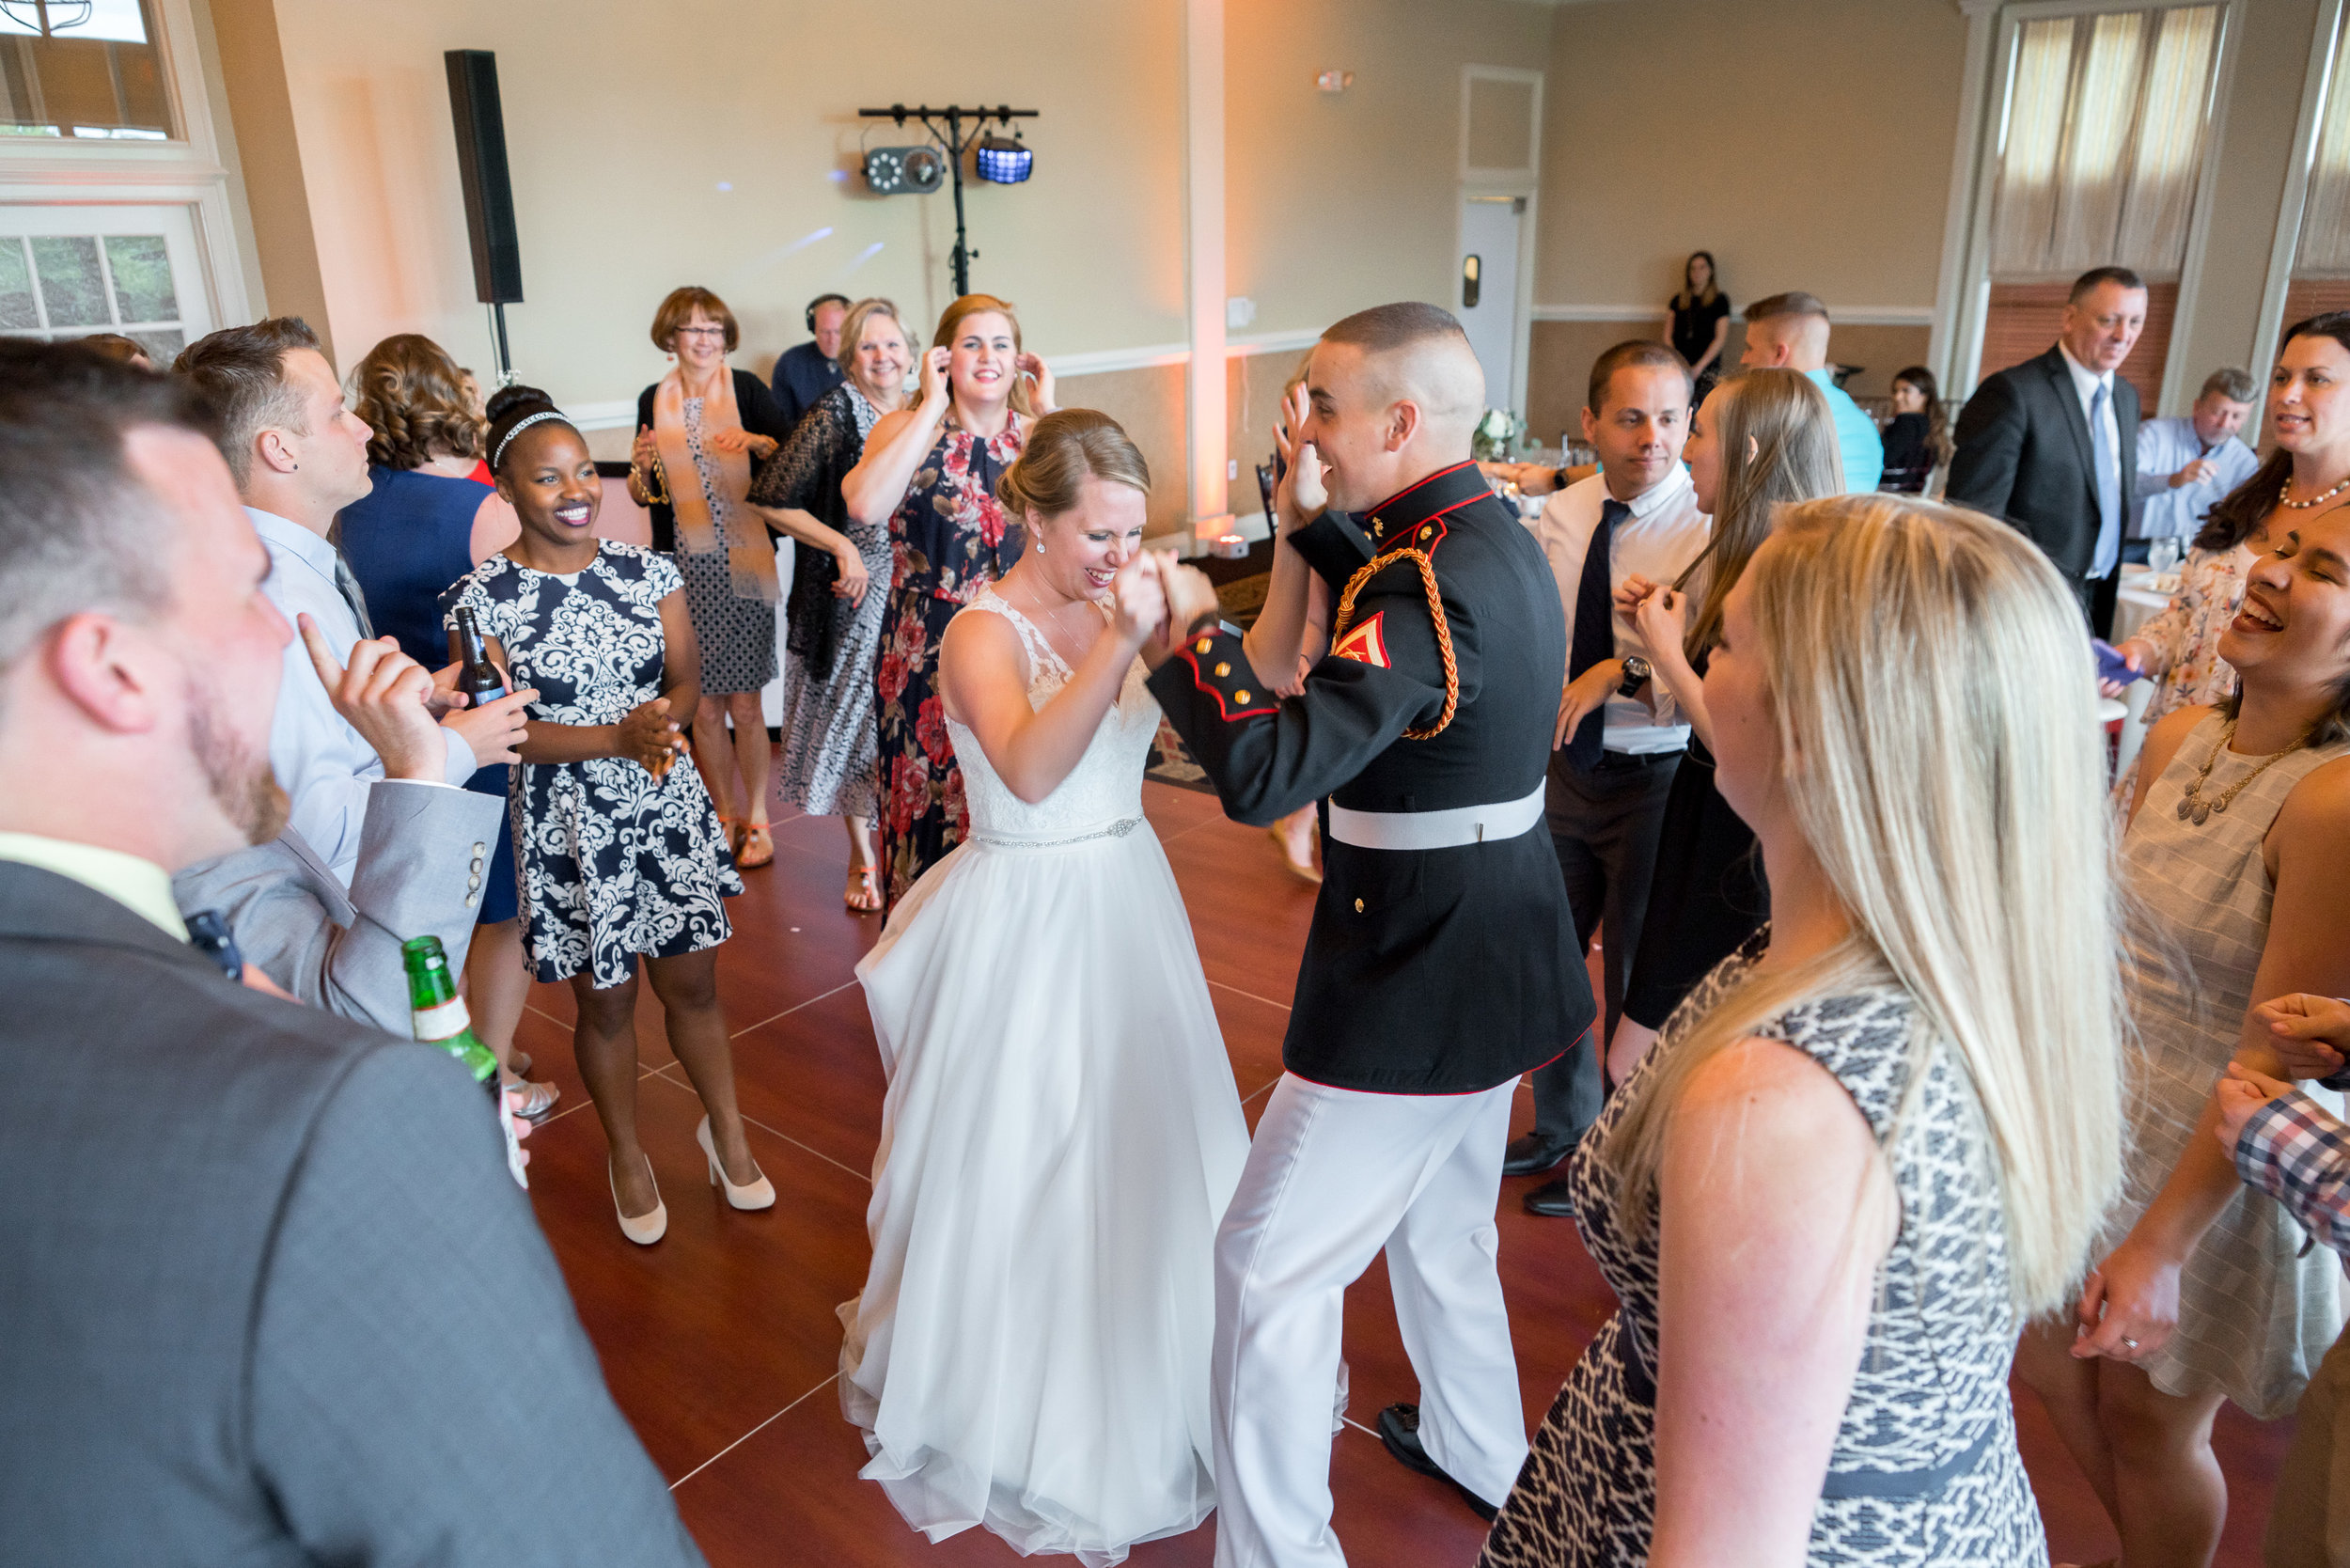 Bride and groom on the dance floor in a circle of friends